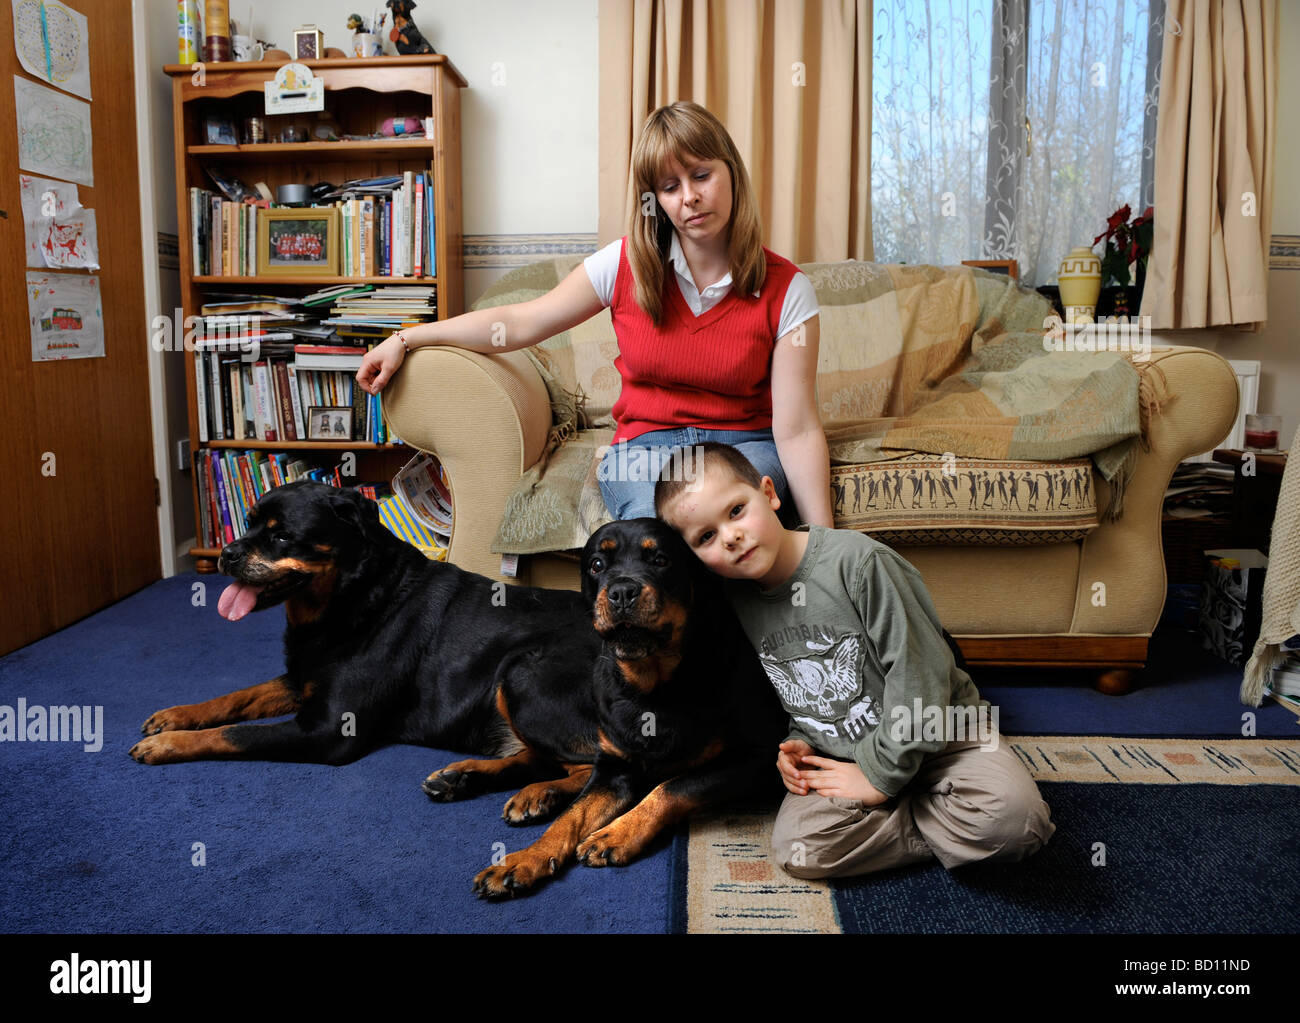 english home guard stock photos english home guard stock images alamy. Black Bedroom Furniture Sets. Home Design Ideas